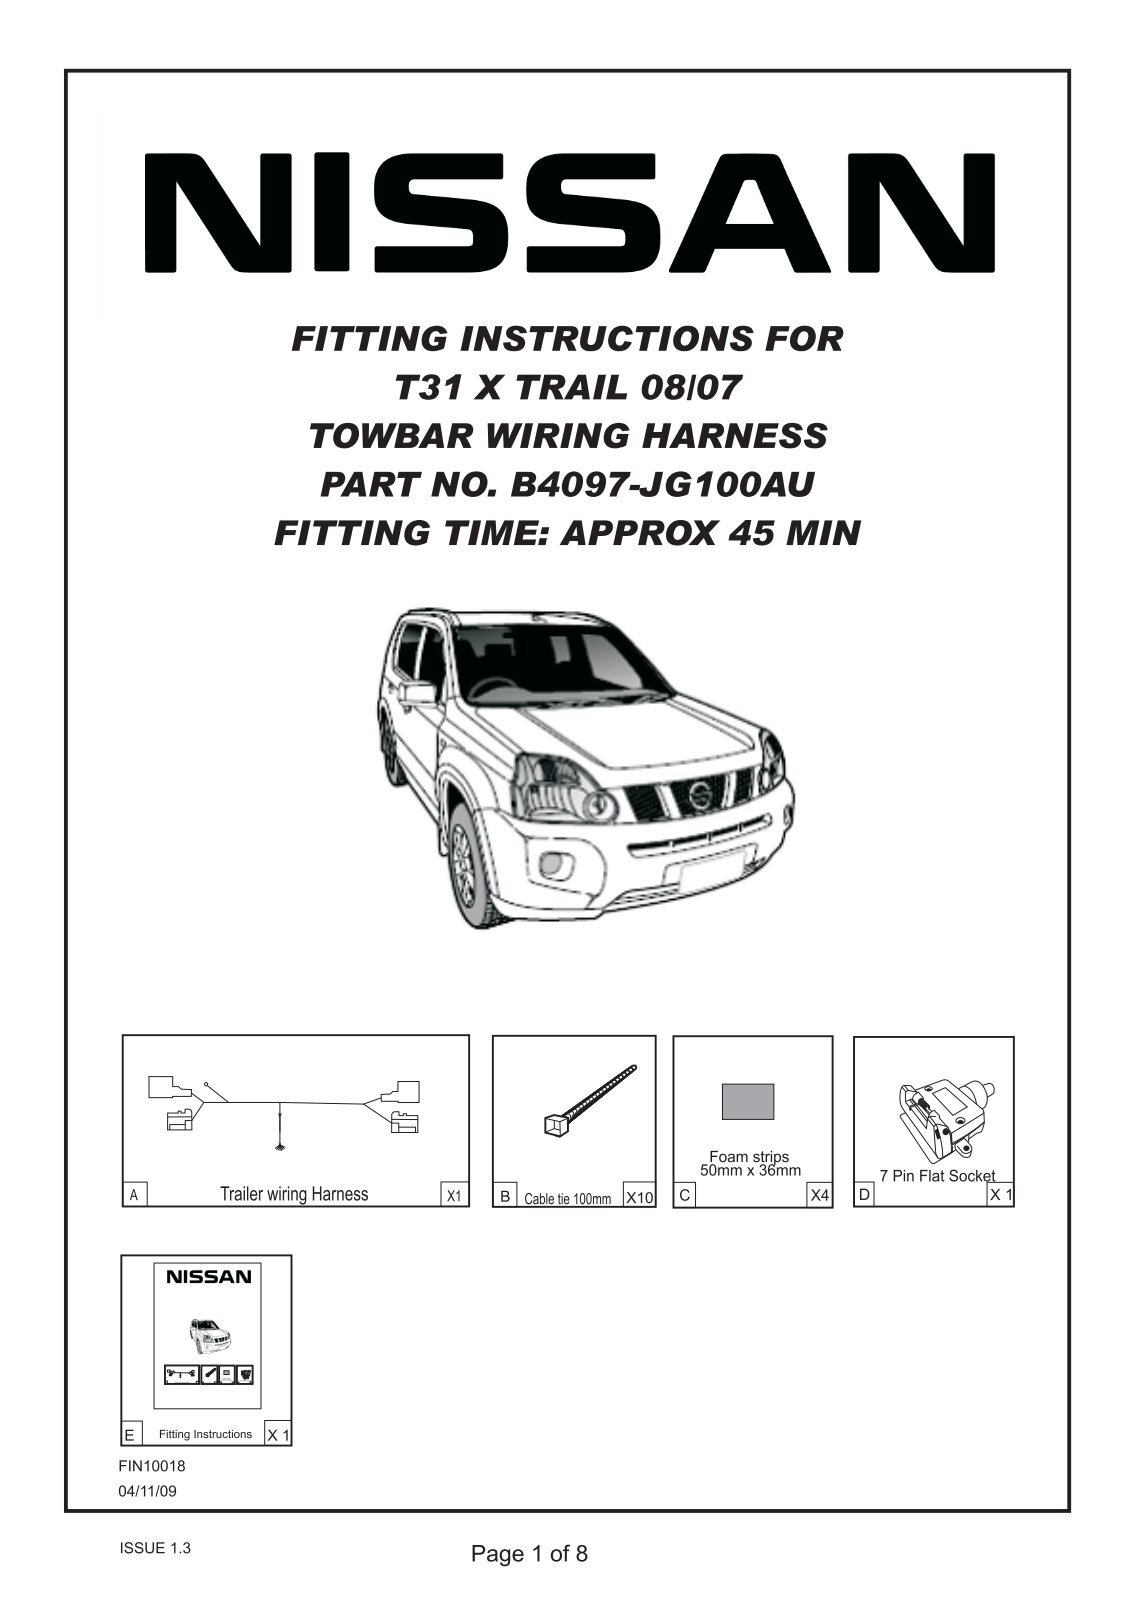 small resolution of 2014 nissan altima s ke diagram nissan auto parts 2007 nissan altima wiring diagram 2001 nissan